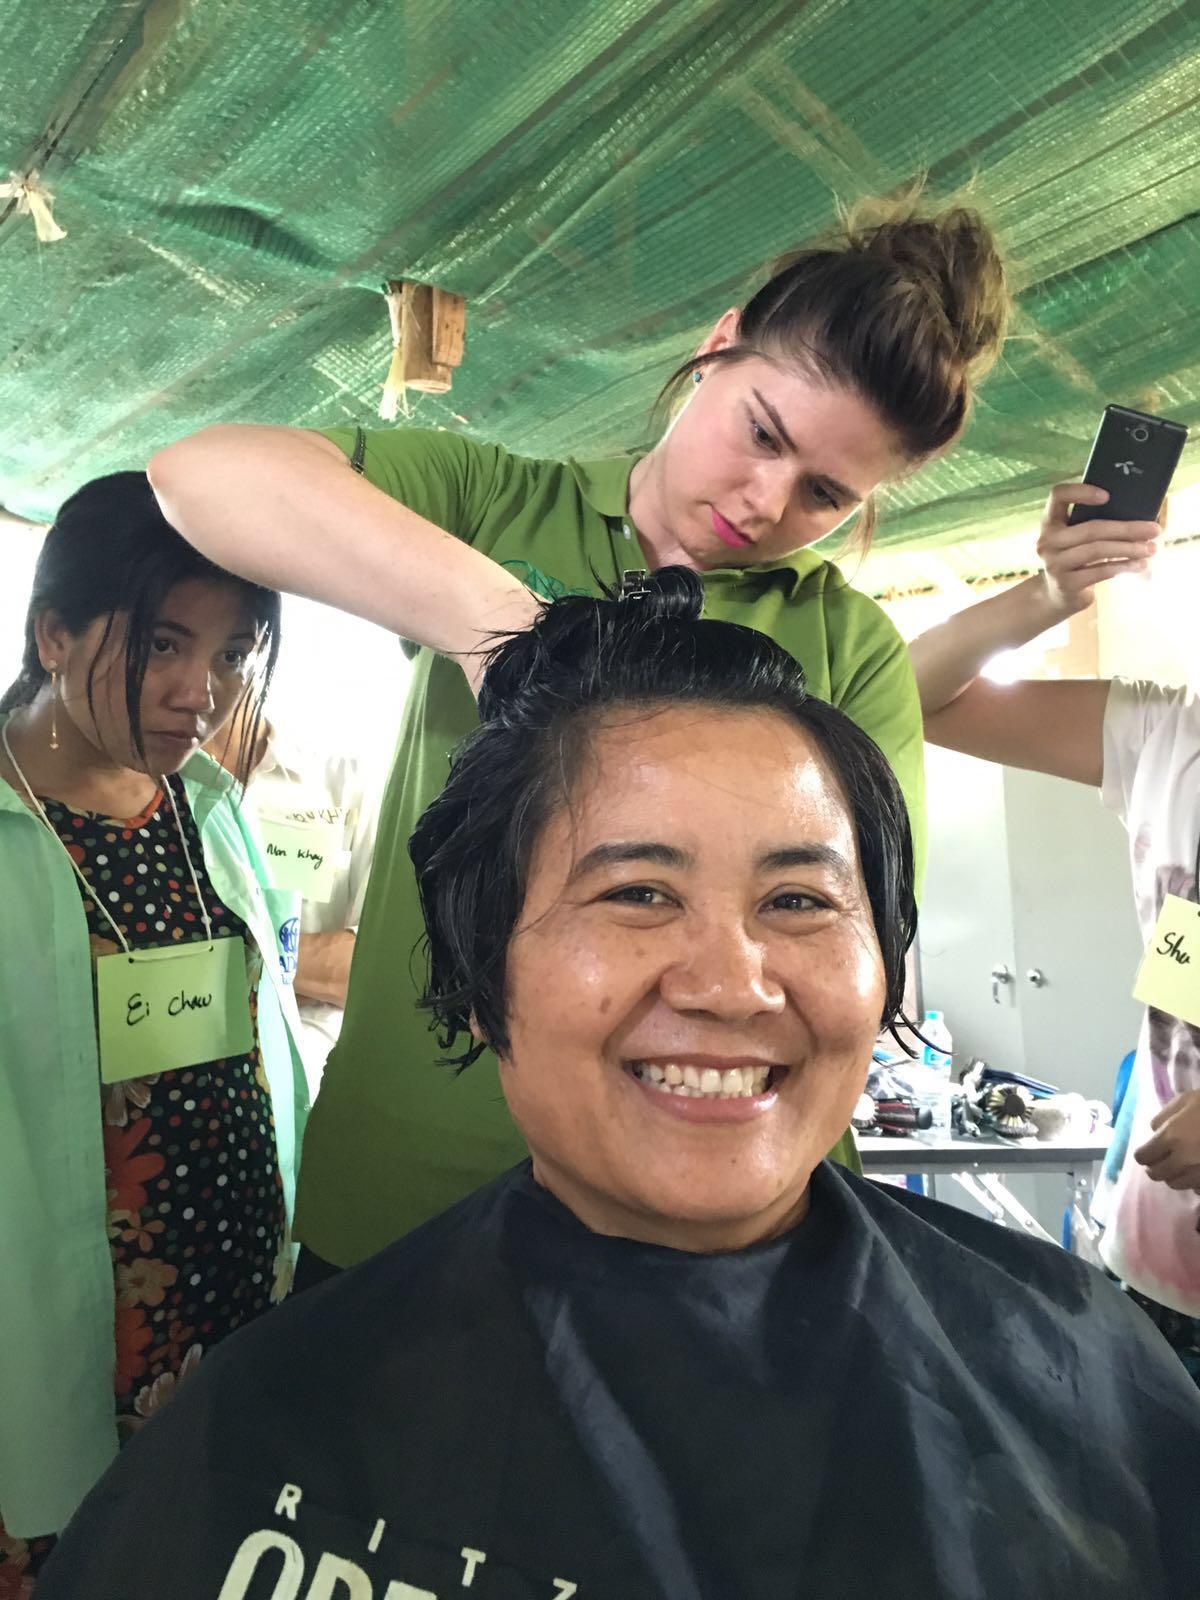 Natalie Hansen from HAUS Salon demonstrates hair cutting techniques on Dina, GBV Manager for Nu Po.